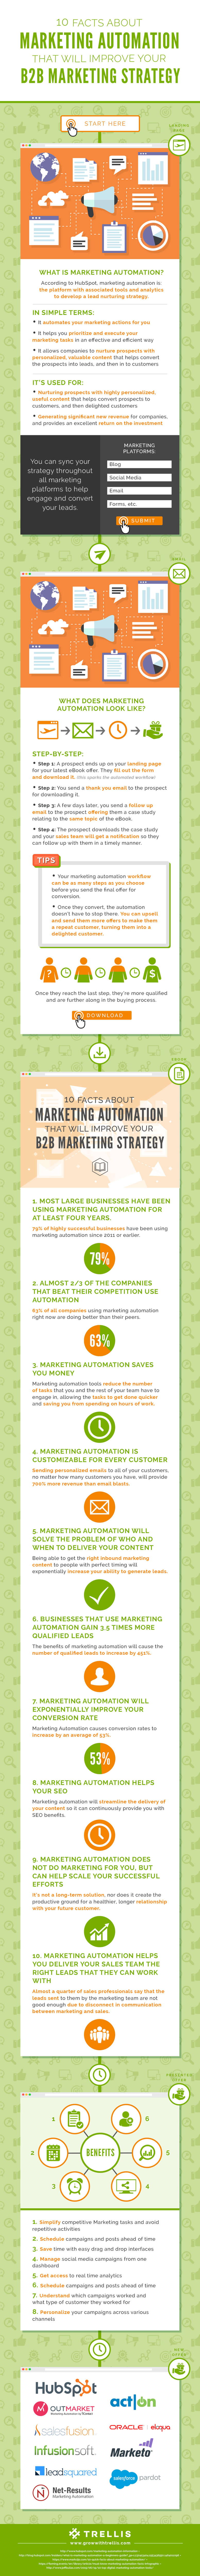 10 facts about marketing automation that will improve your b2b marketing strategy